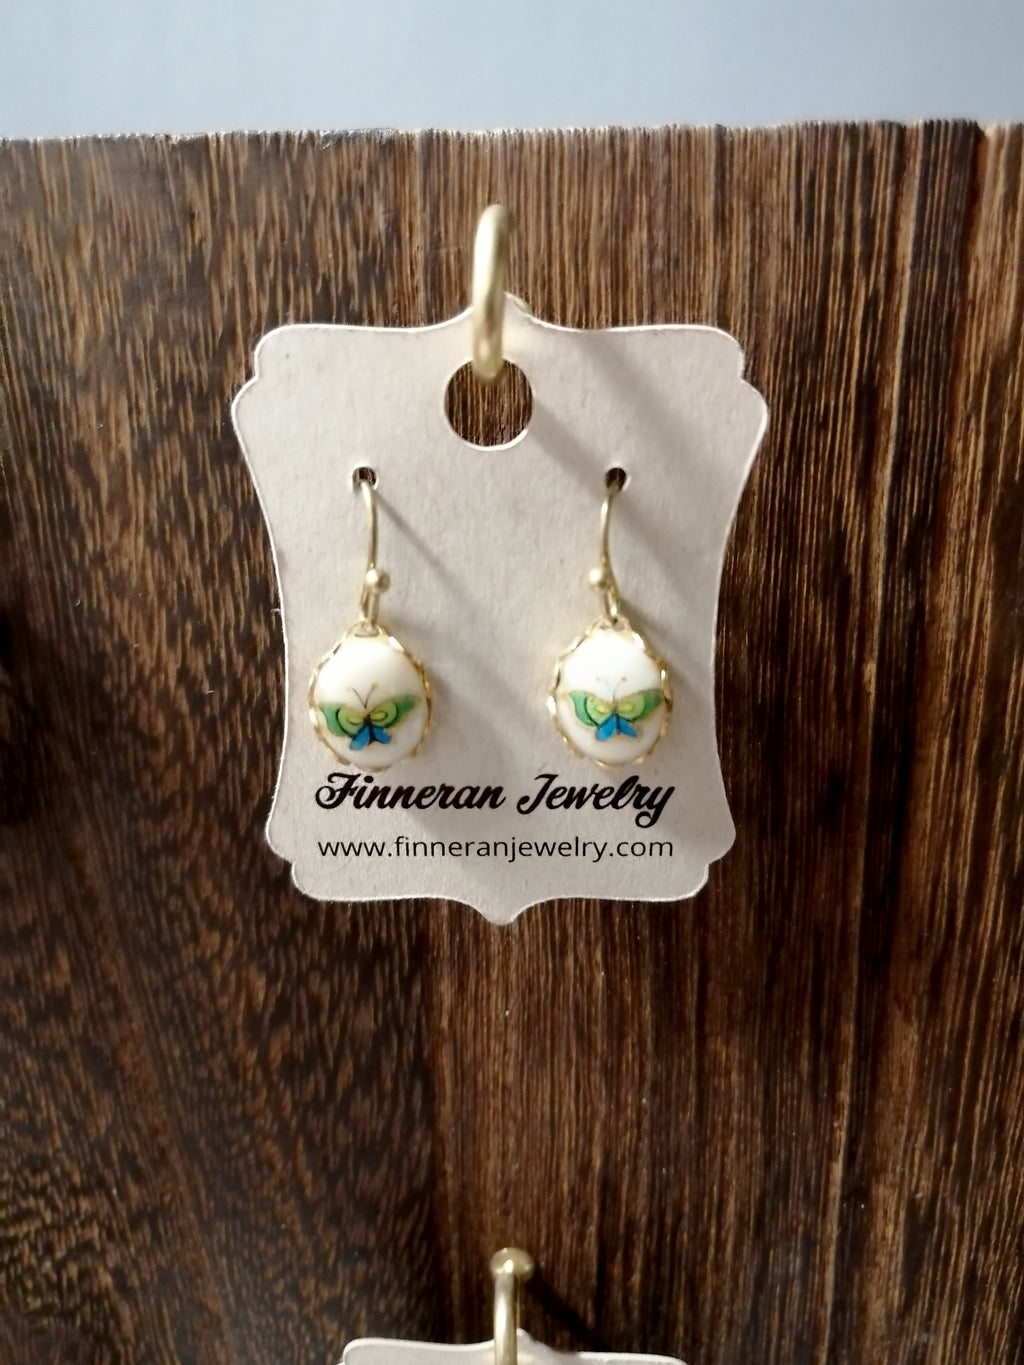 Vintage Bead Dangling Earrings by Finneran Jewelry